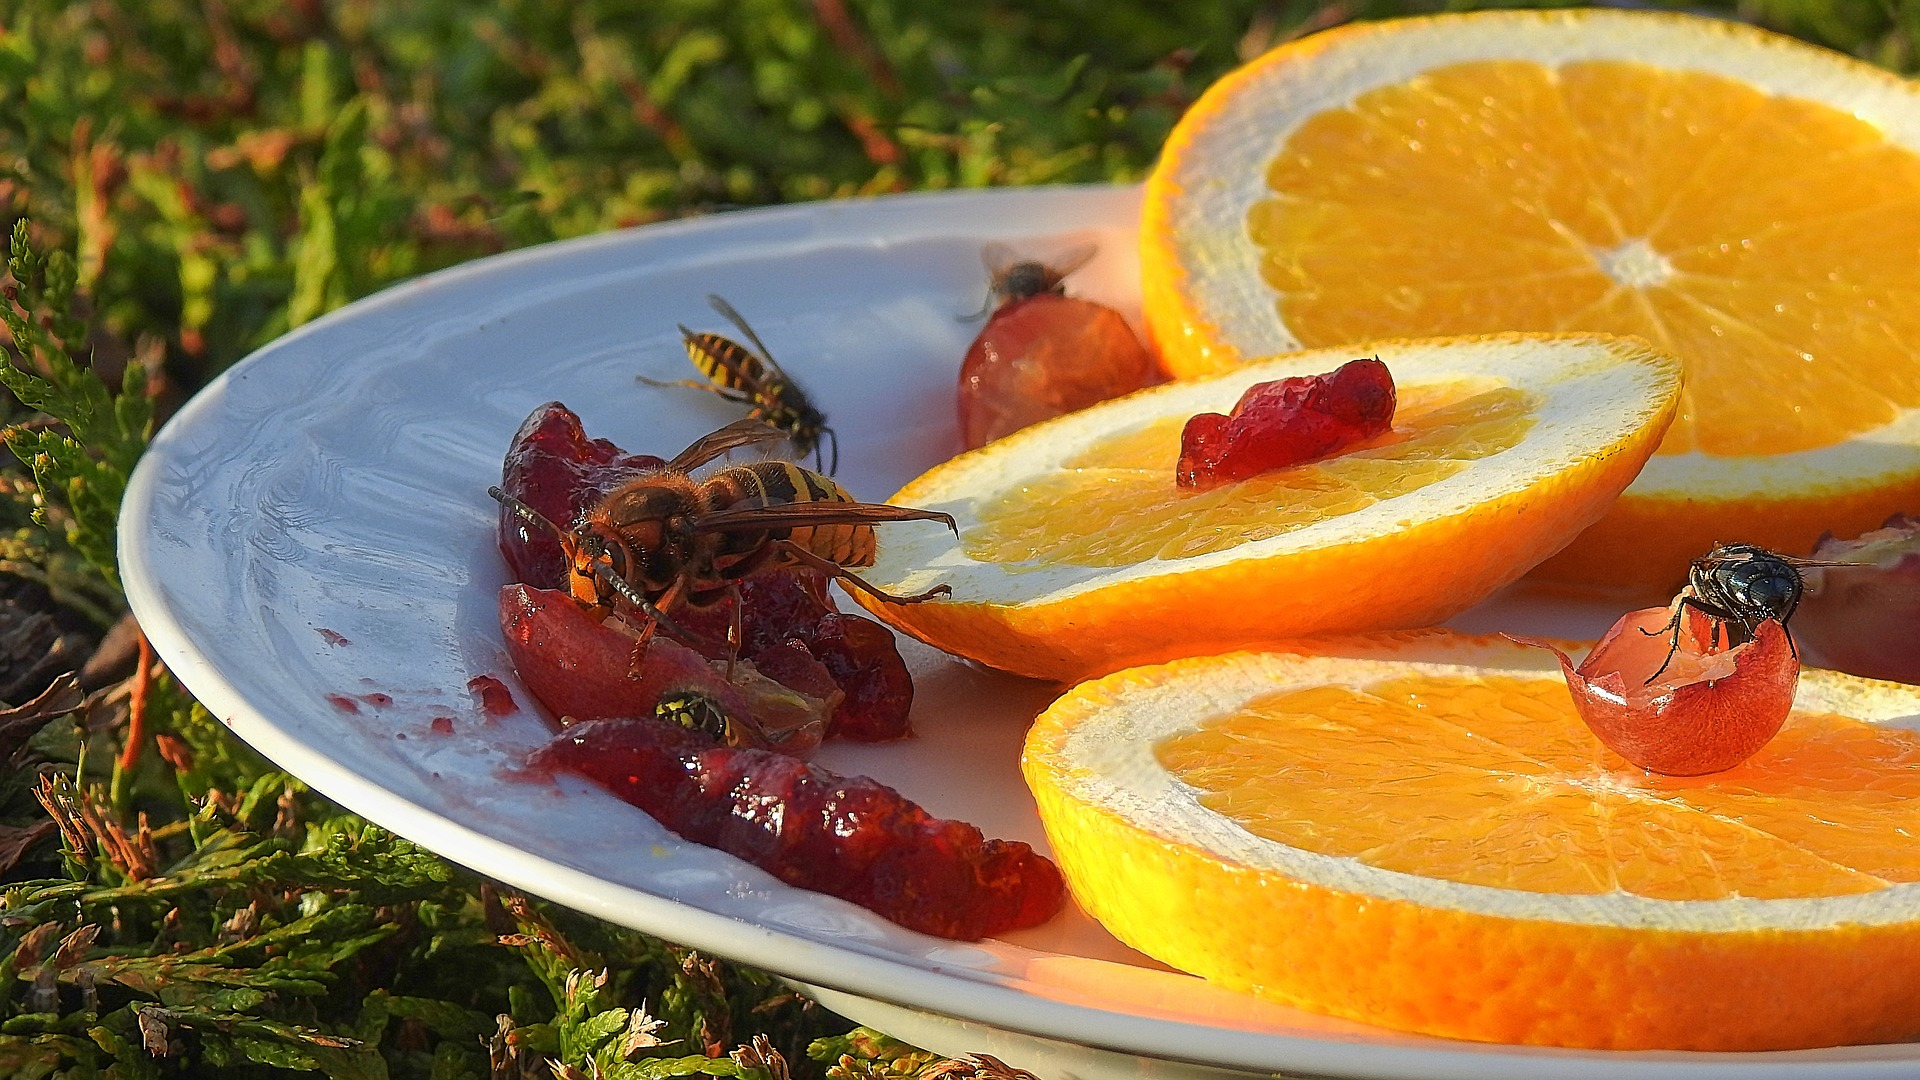 insects-feeding-3736076_1920